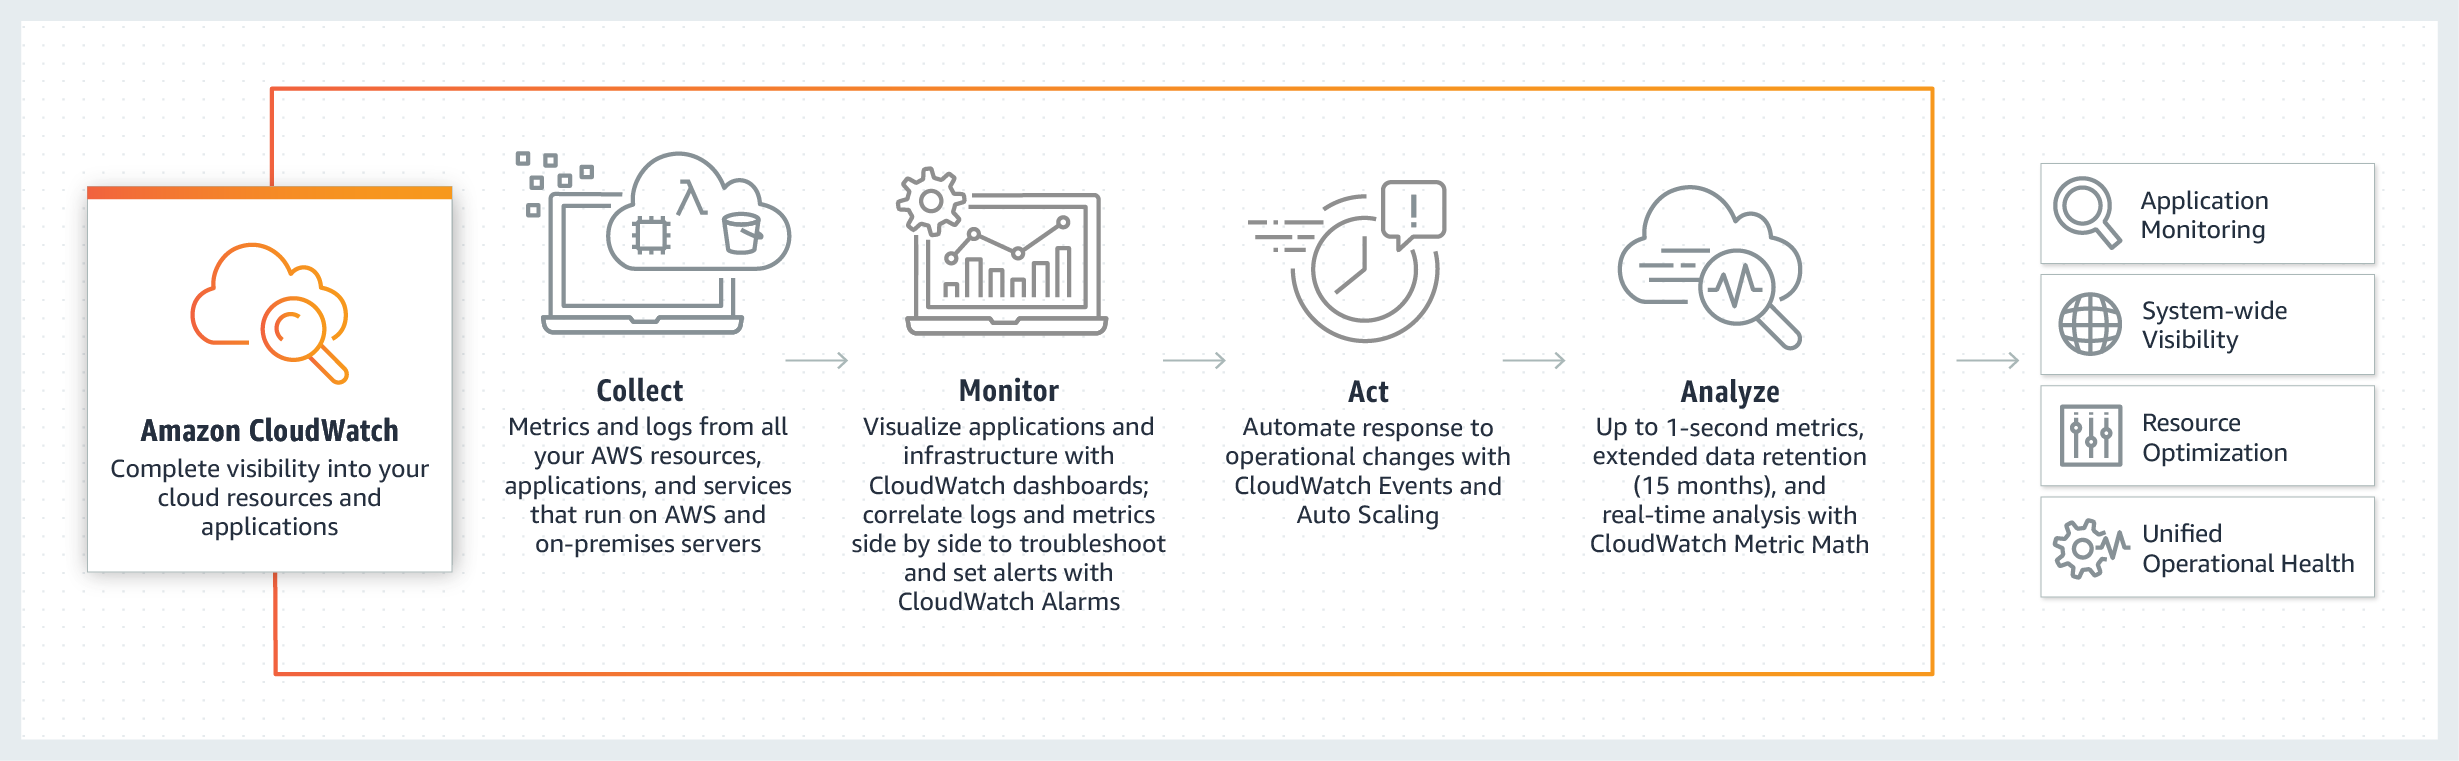 product-page-diagram_Cloudwatch_v4